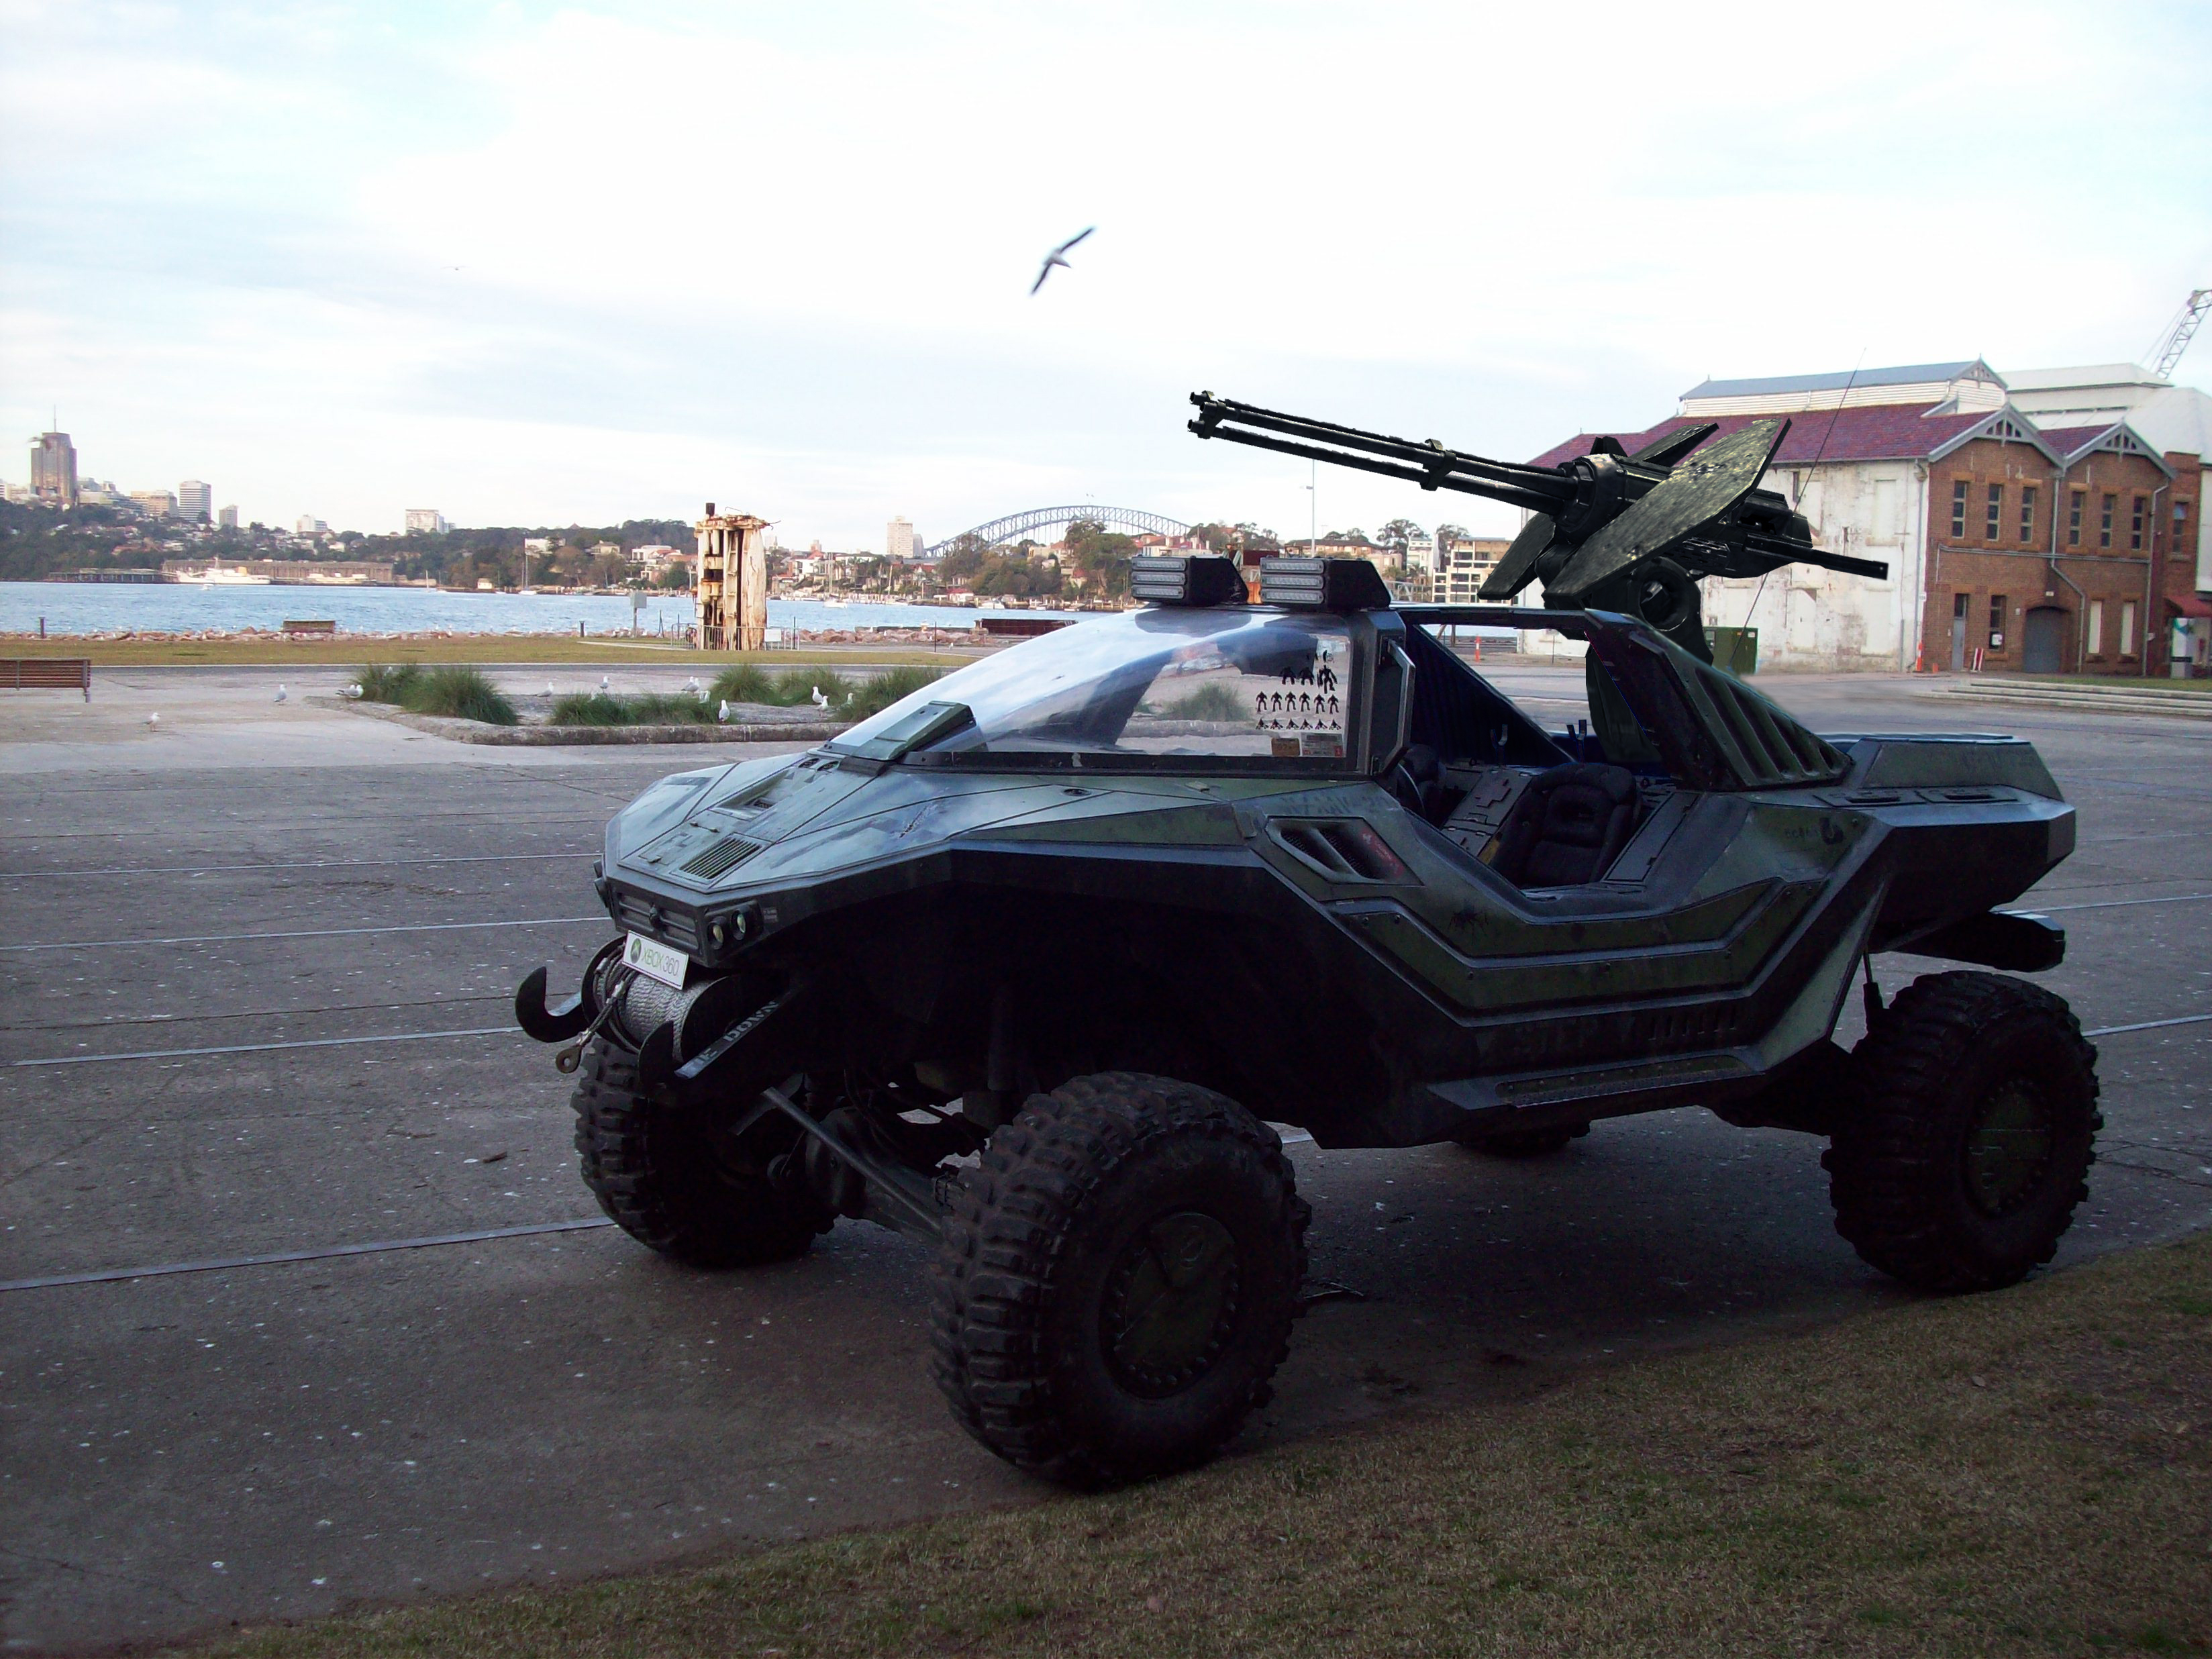 Real Life Halo Vehicles: Real Life Warthog From HALO « MyConfinedSpace